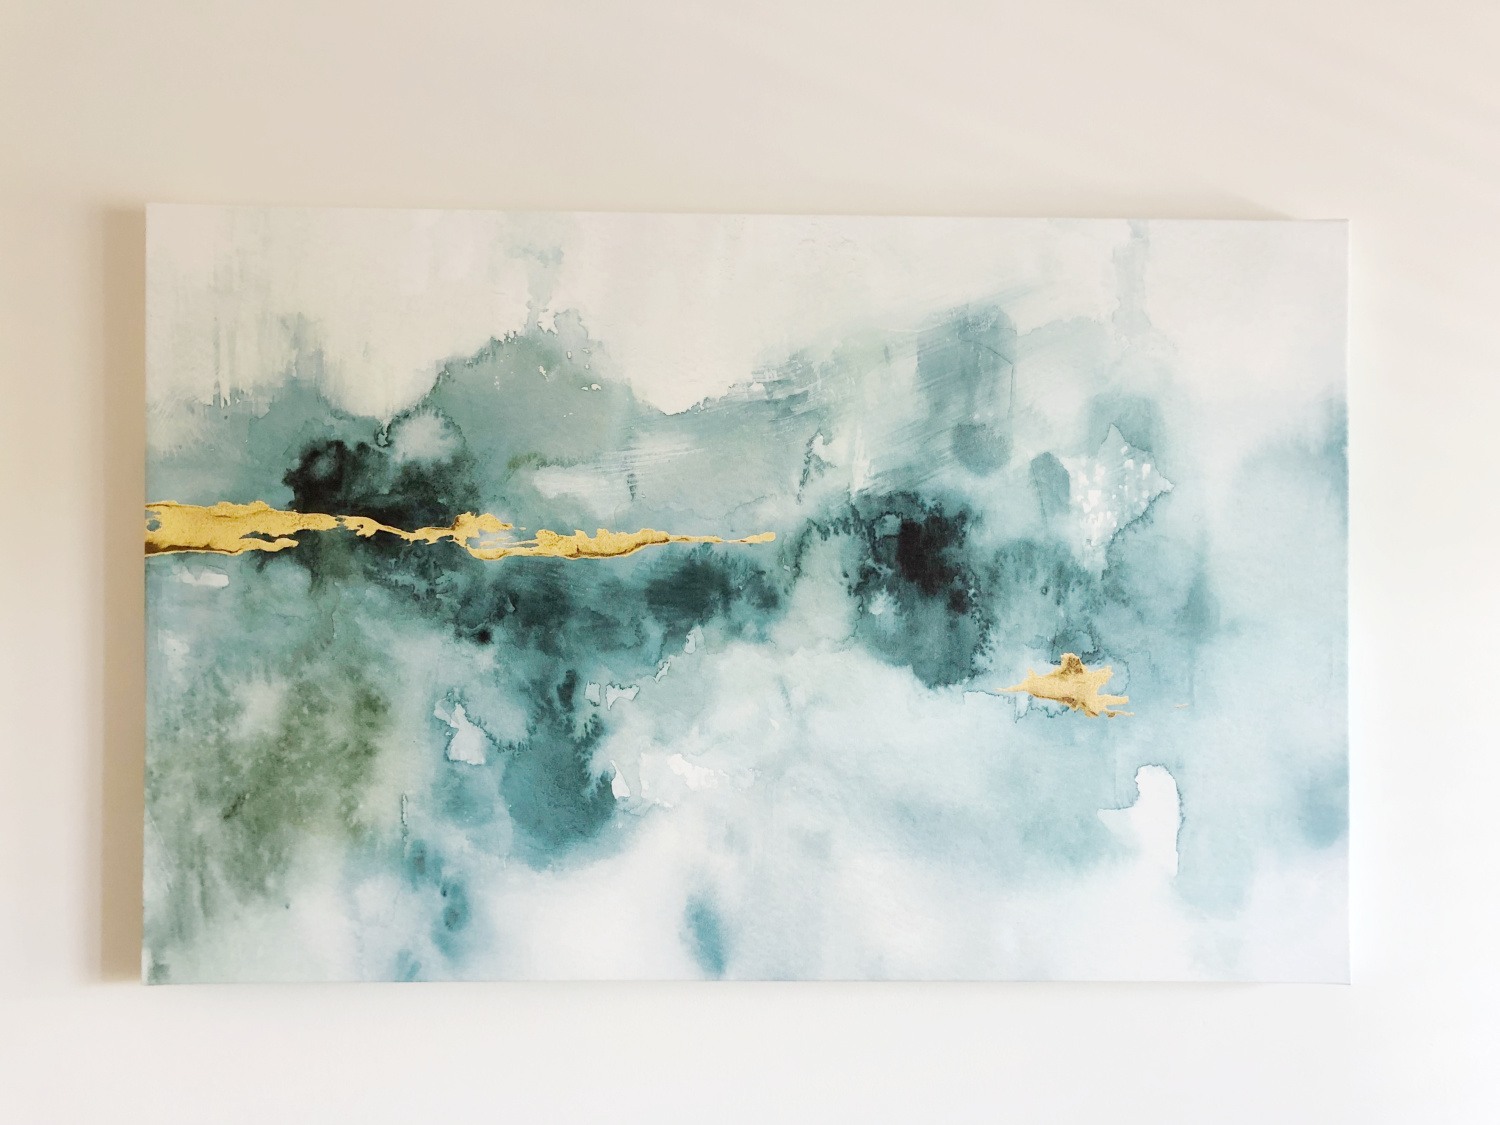 abstract art with teal and gold - TEAL LIVING ROOM DECOR - LAKE CONDO or Beach